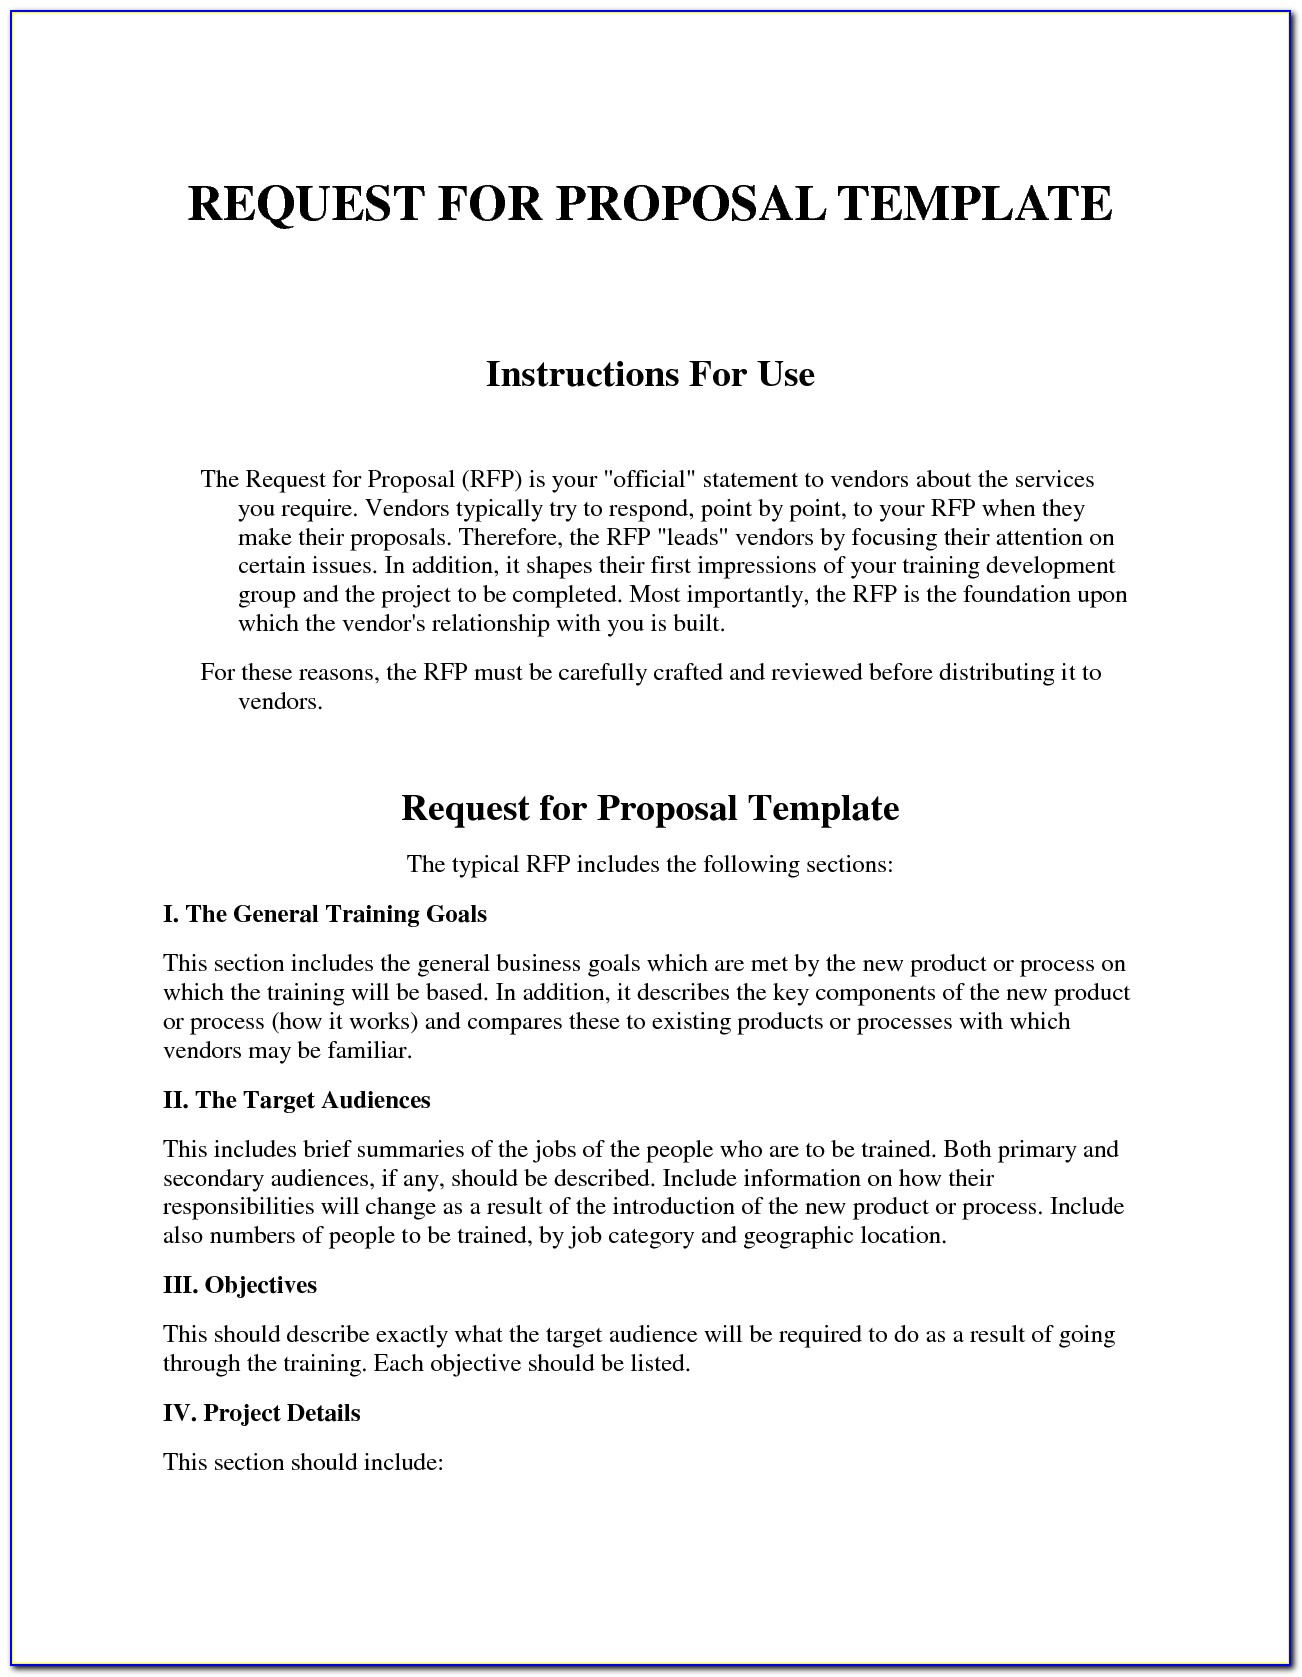 Request For Proposal Response Word Template